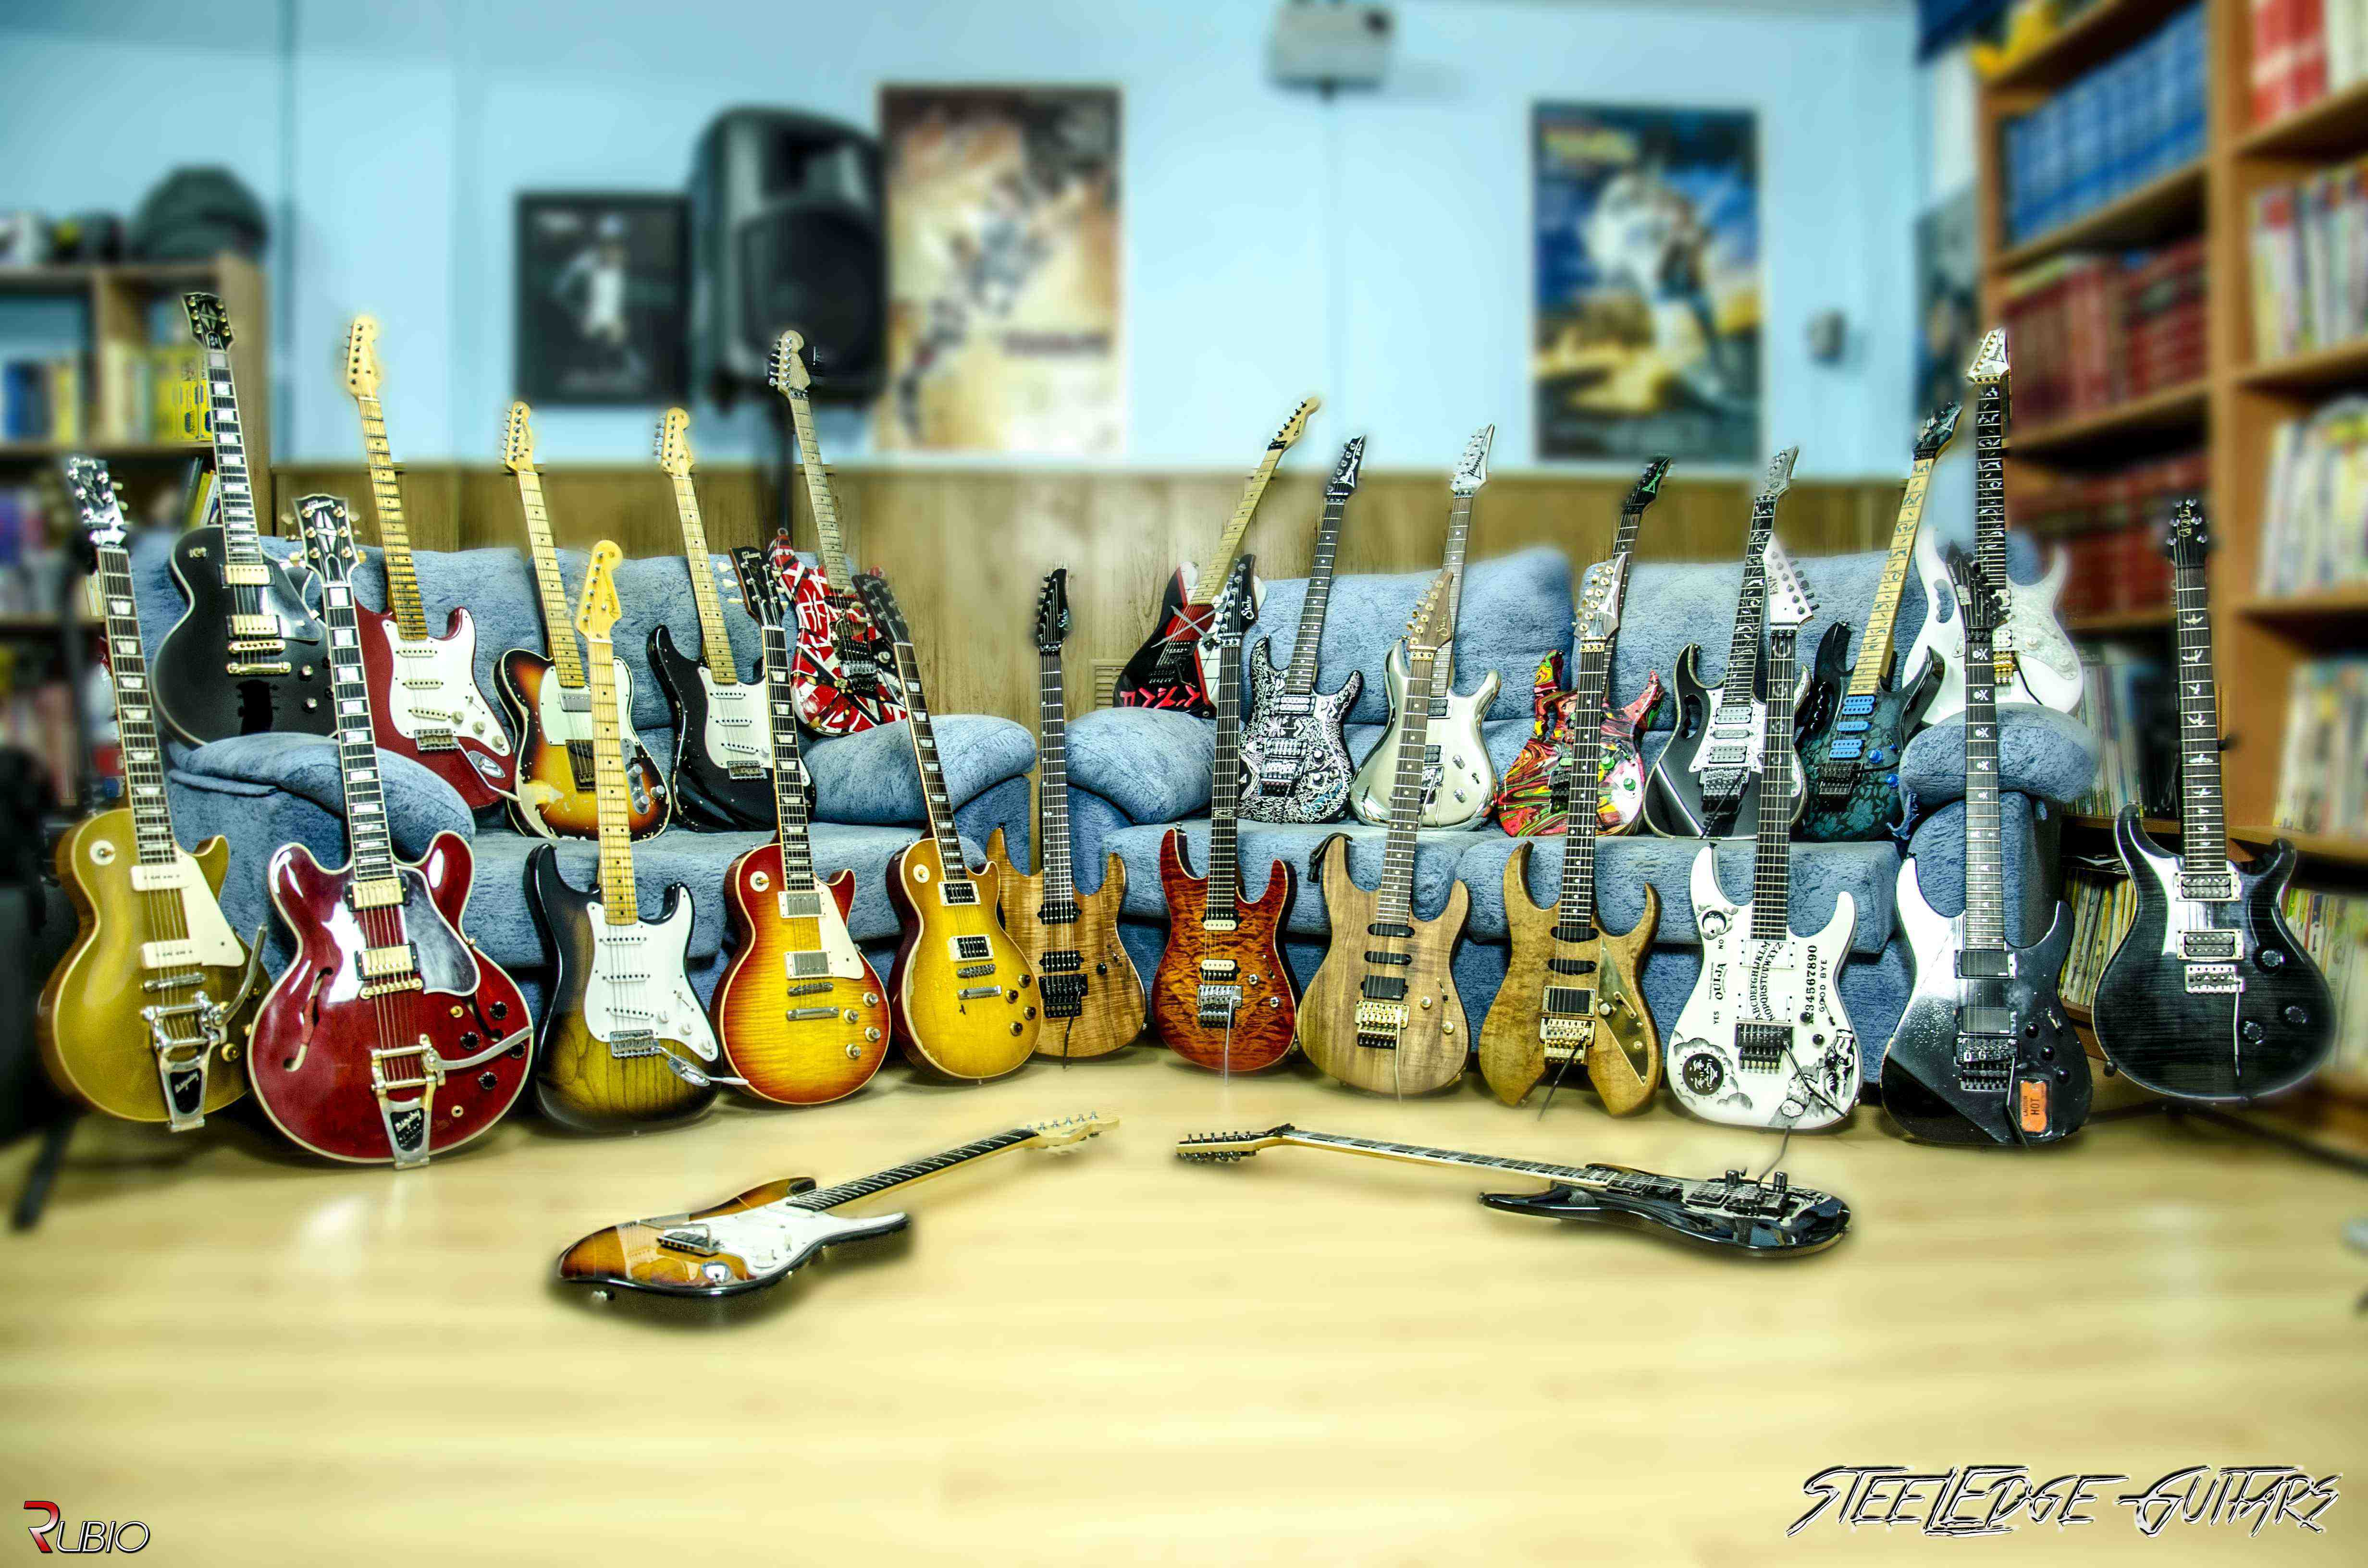 Coleccion Guitarras Sofa